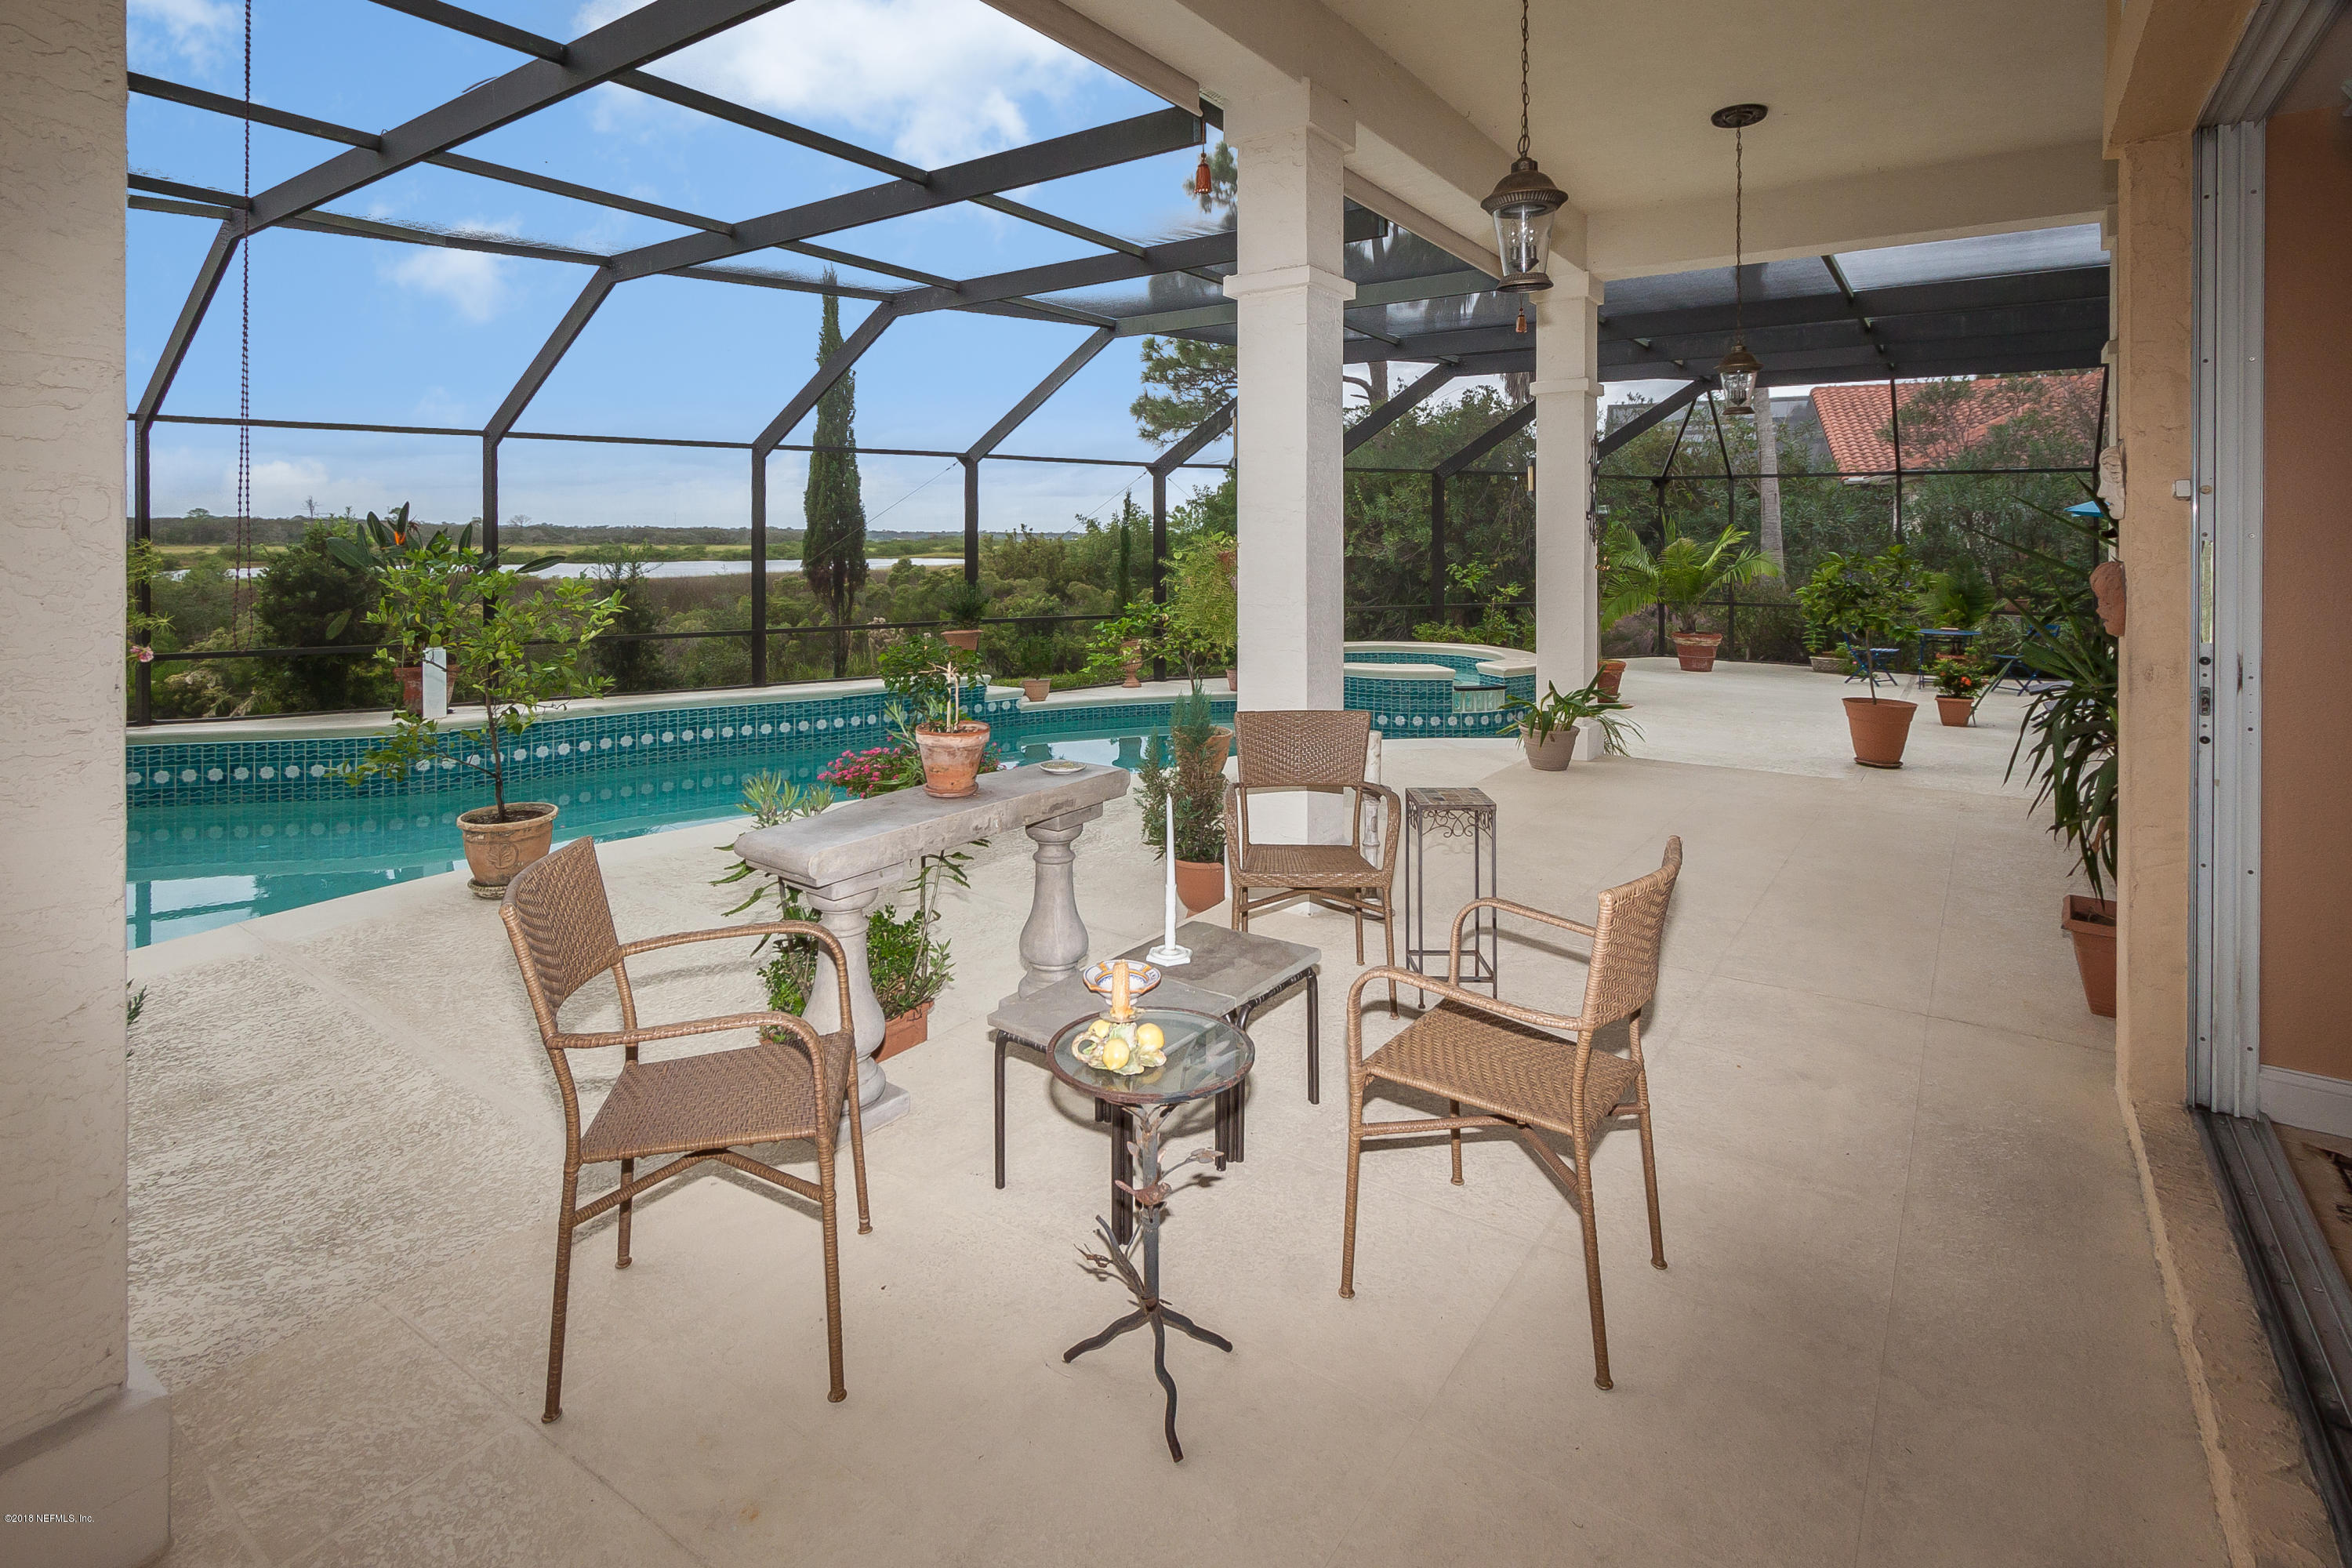 176 HERONS NEST, ST AUGUSTINE, FLORIDA 32080, 3 Bedrooms Bedrooms, ,3 BathroomsBathrooms,Residential - single family,For sale,HERONS NEST,964848